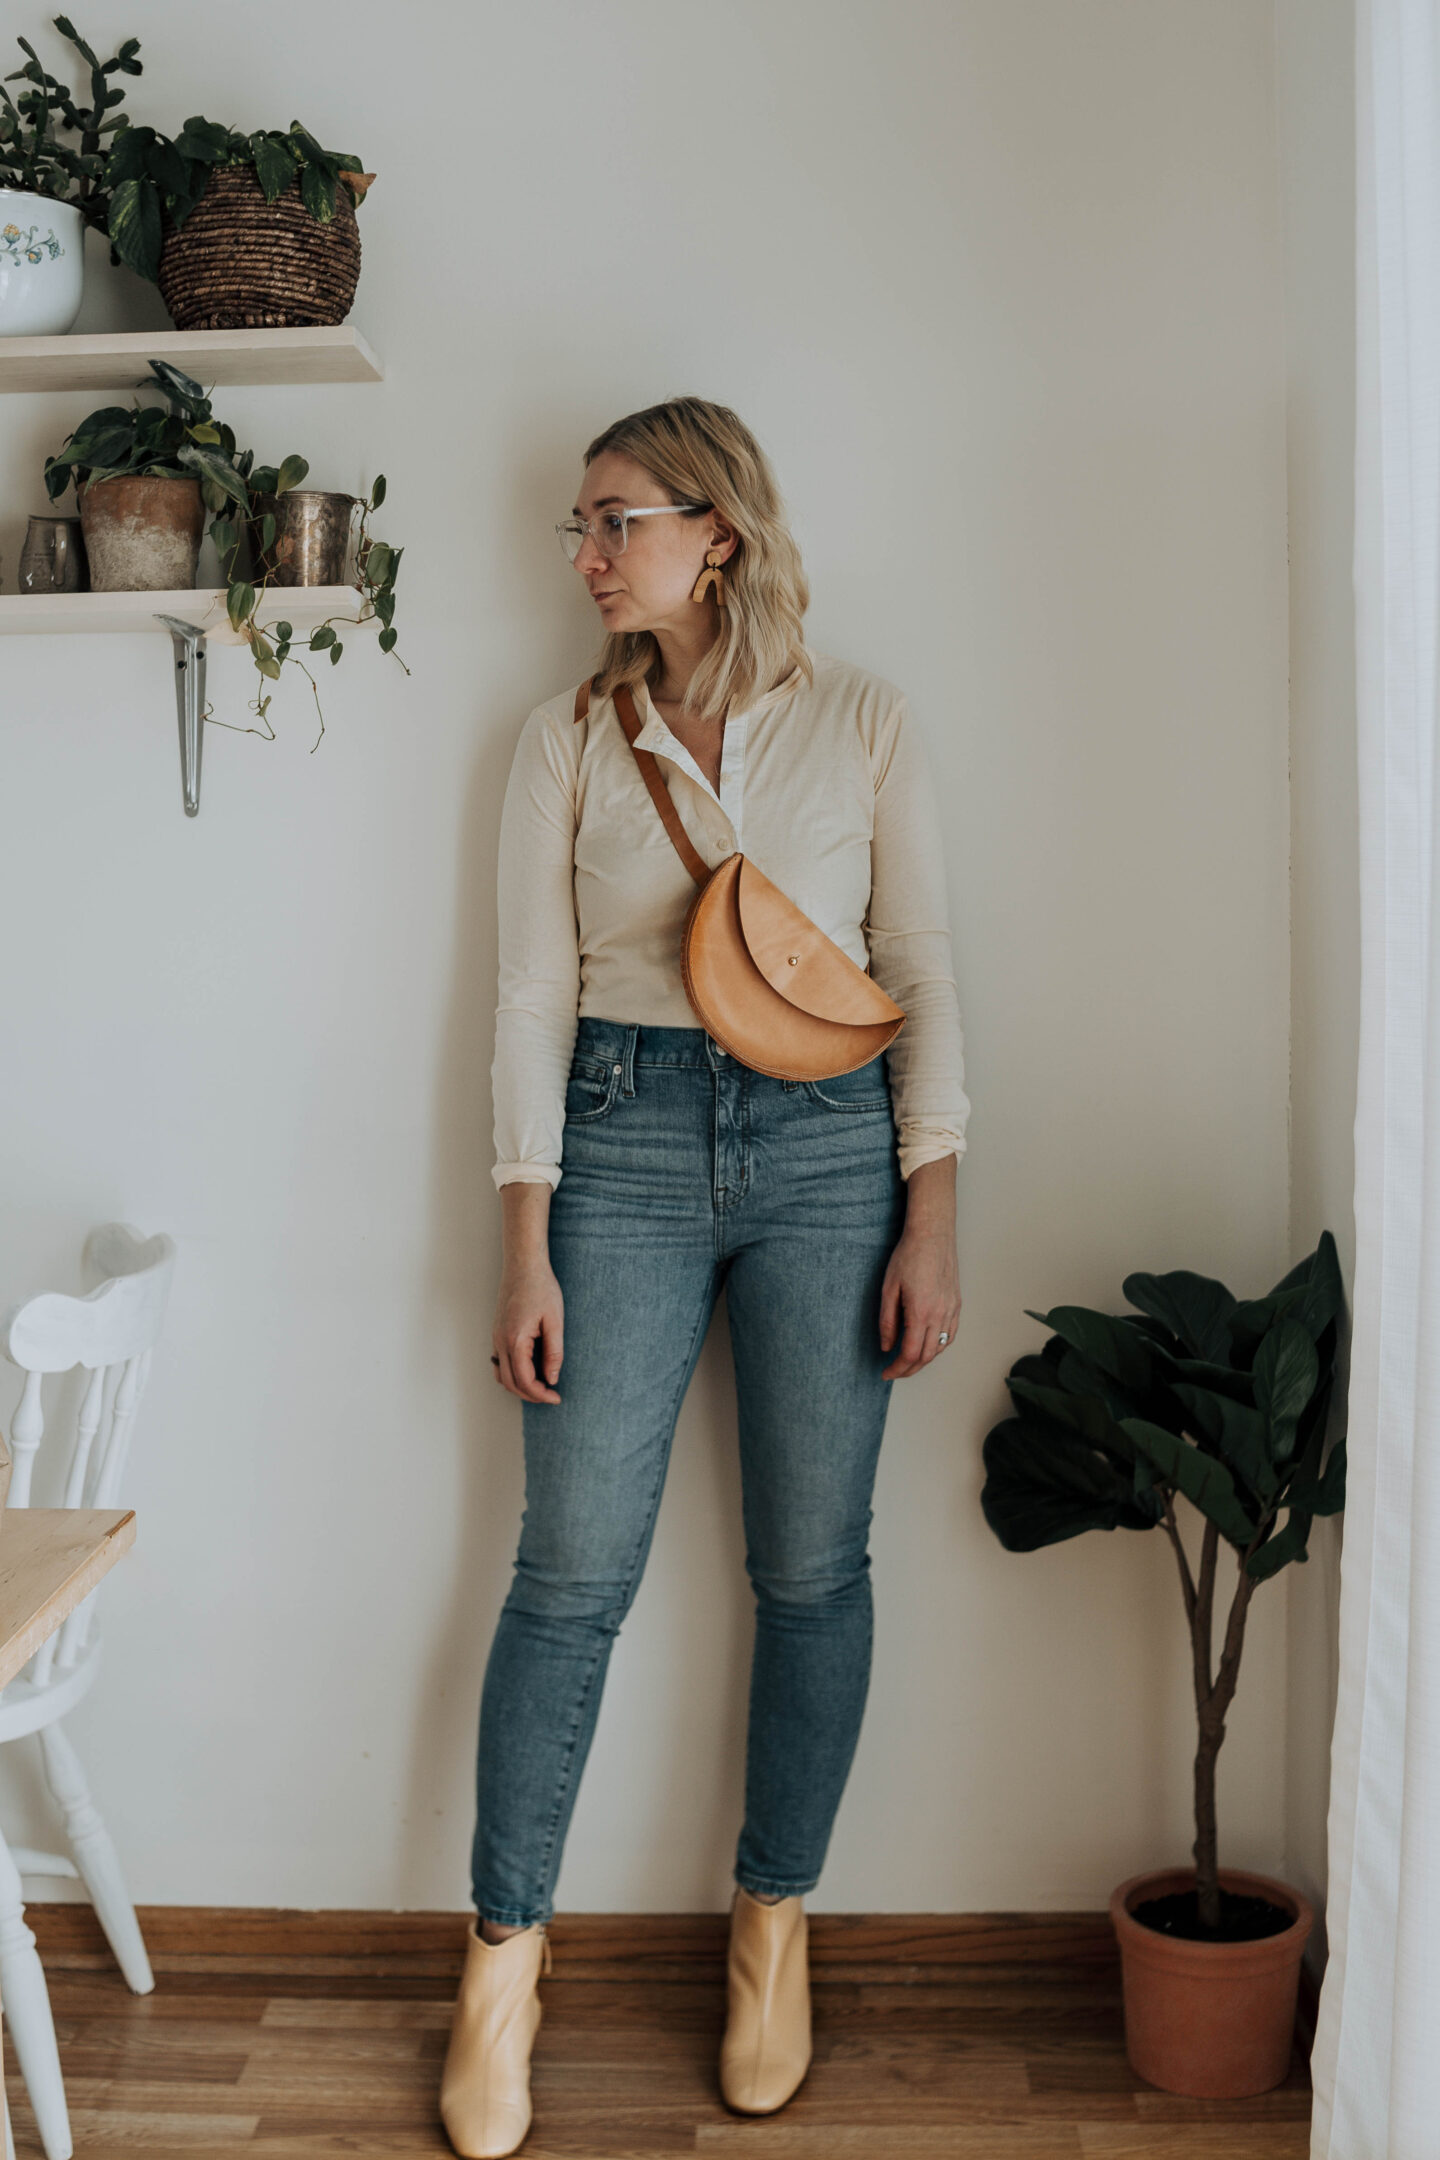 Everlane Choose What You Pay Event: My Picks